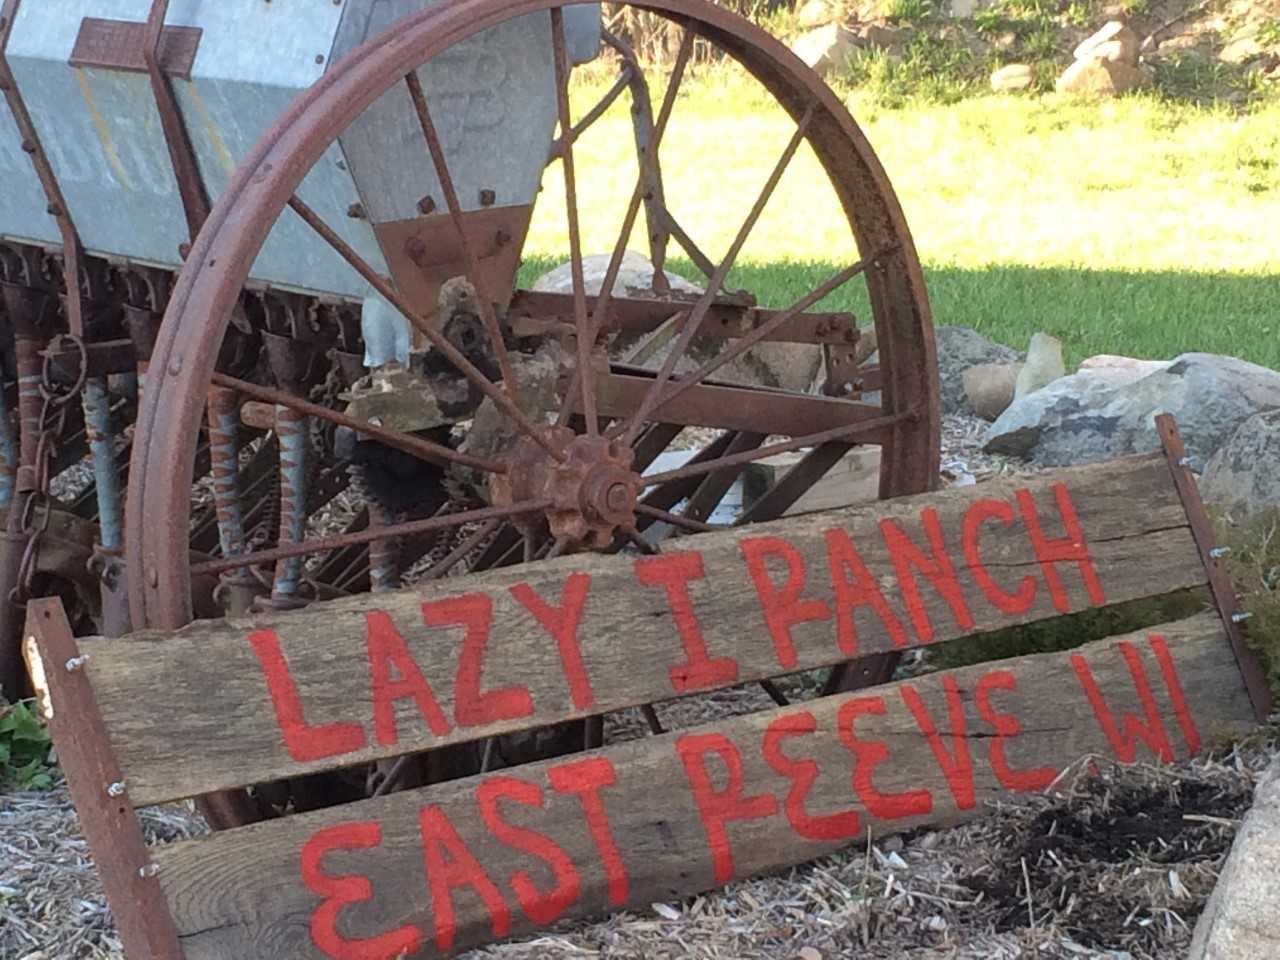 lazy i ranch sign.jpg